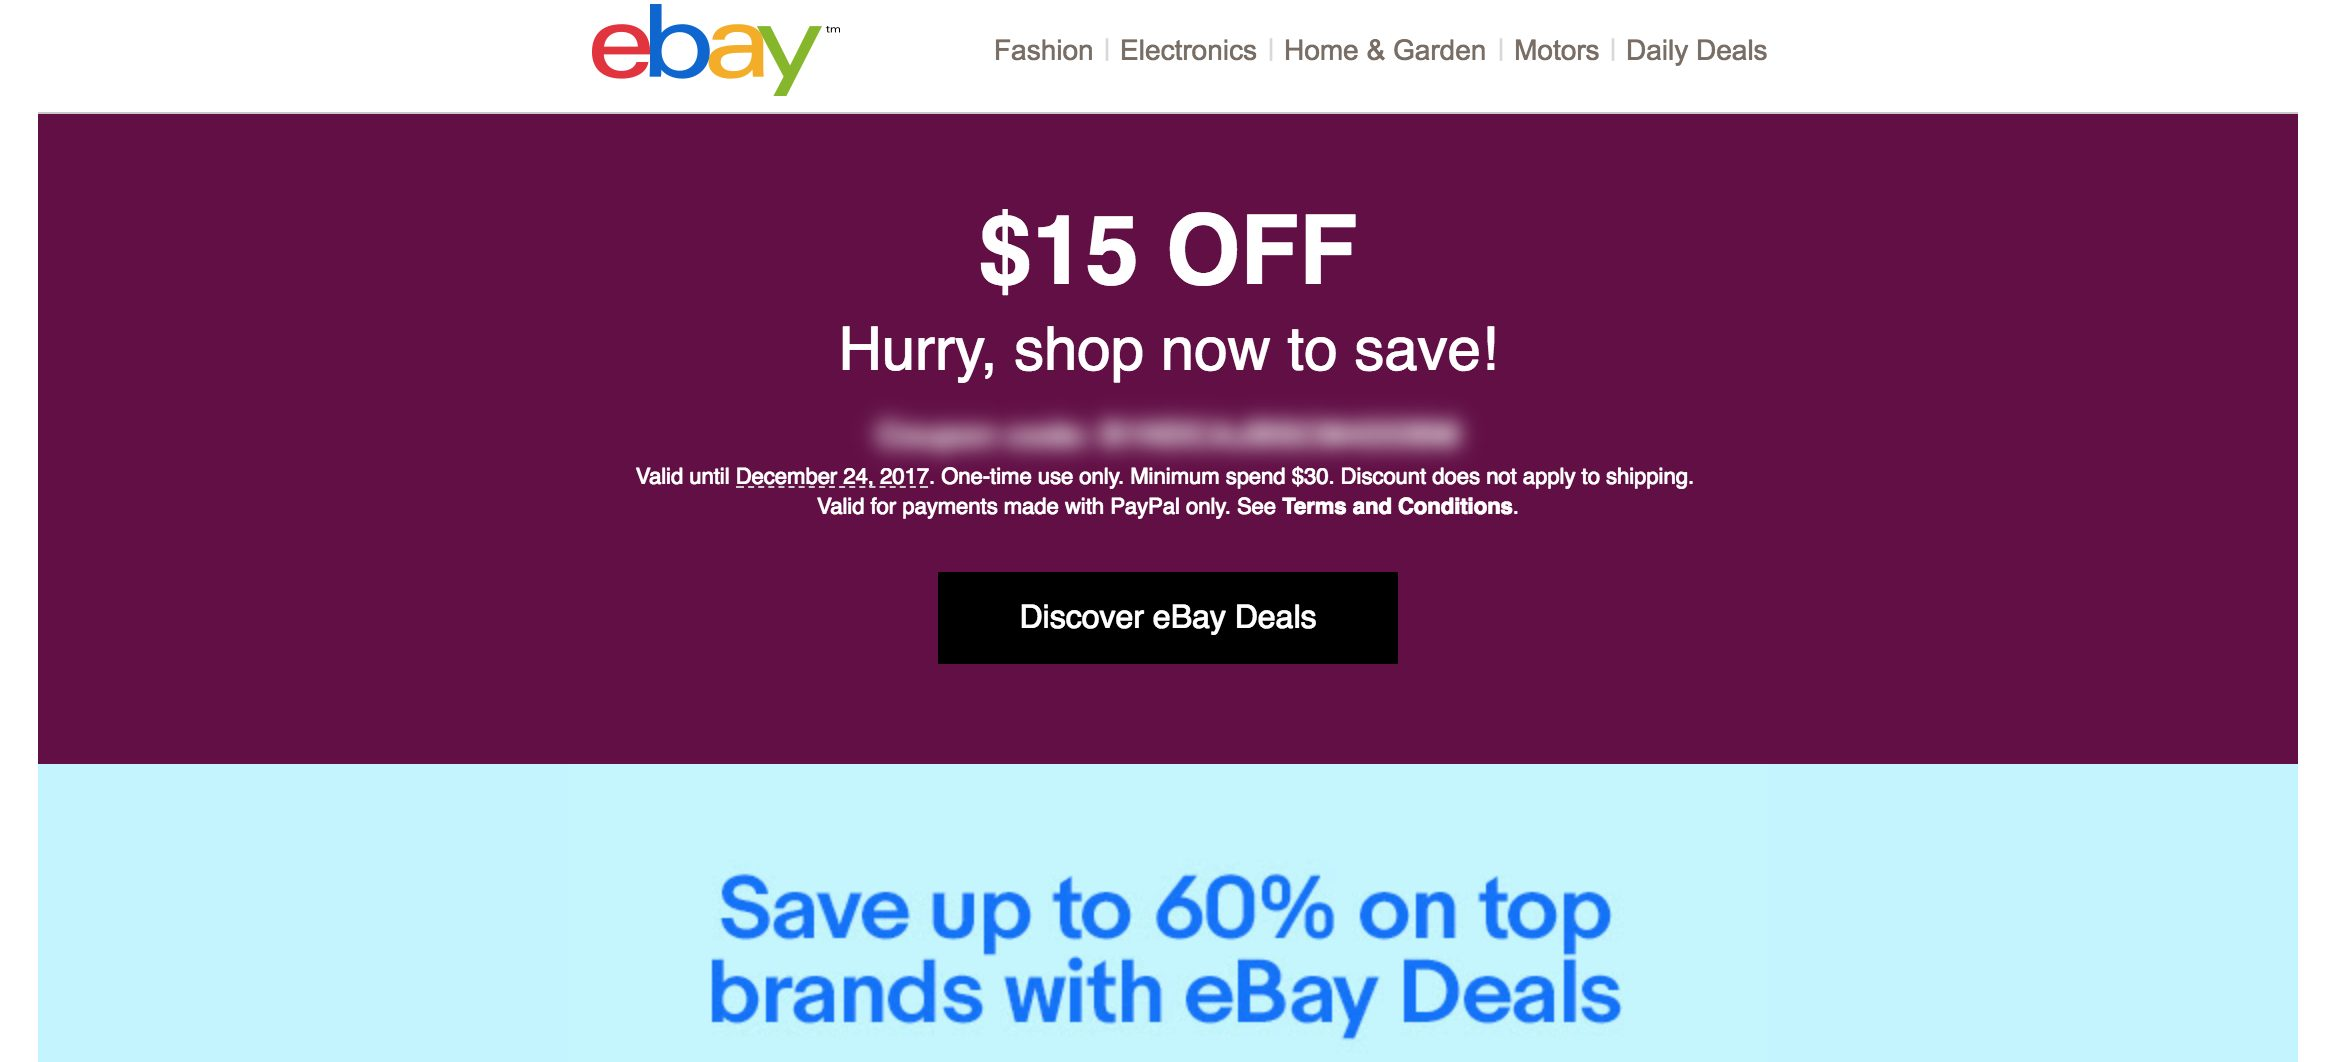 Here's how to redeem your eBay Bucks certificate using eBay's checkout: Shop on eBay. Continue to the eBay checkout page and pay for your item by the expiration date.